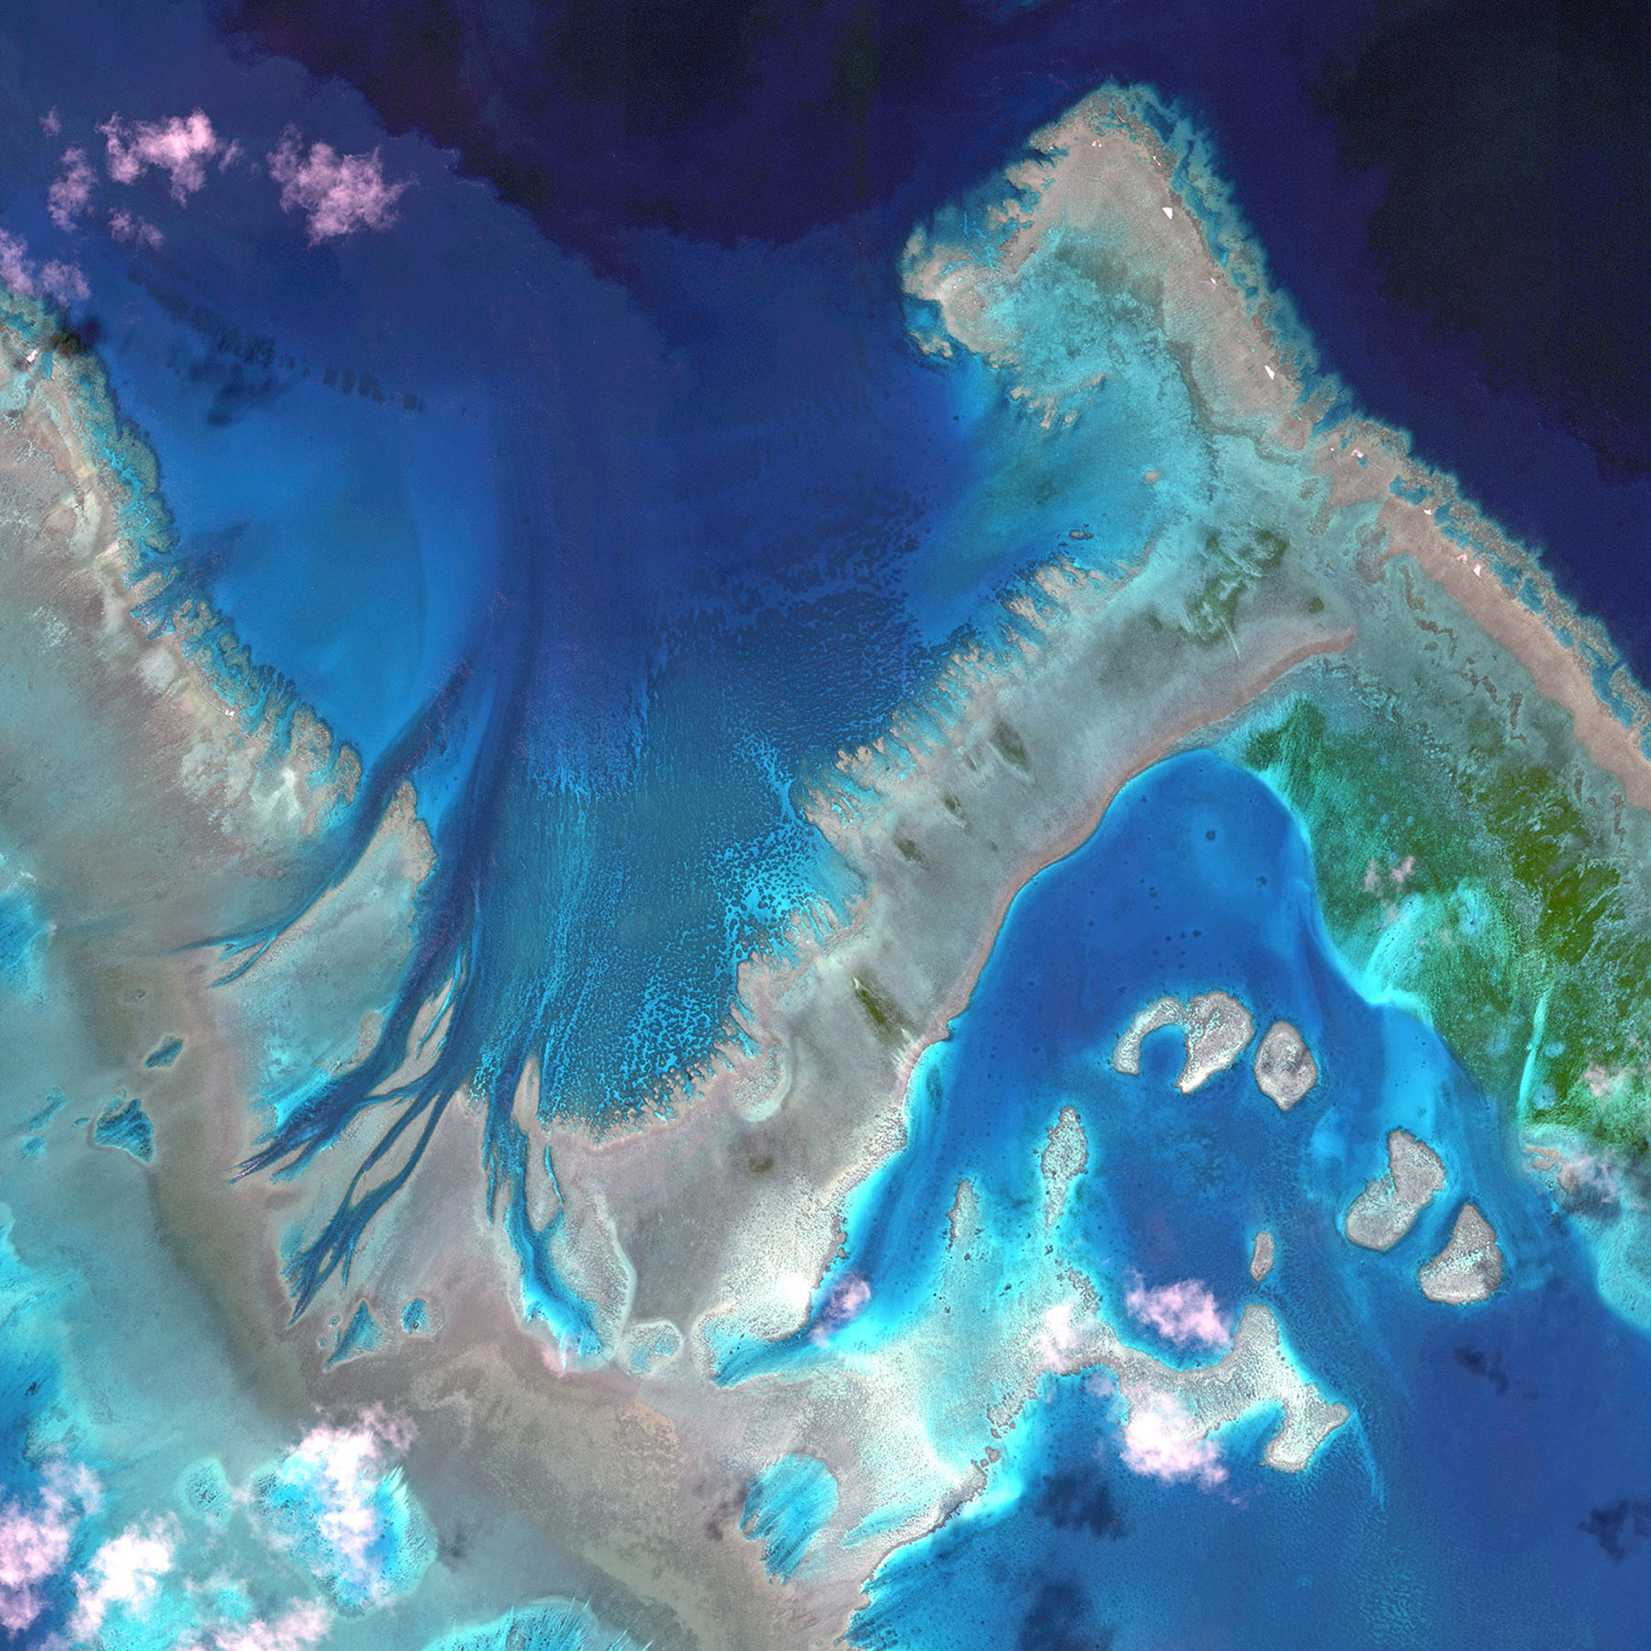 This is a satellite image of the Great Barrier Reef, Australia colllected on April 22, 2013.